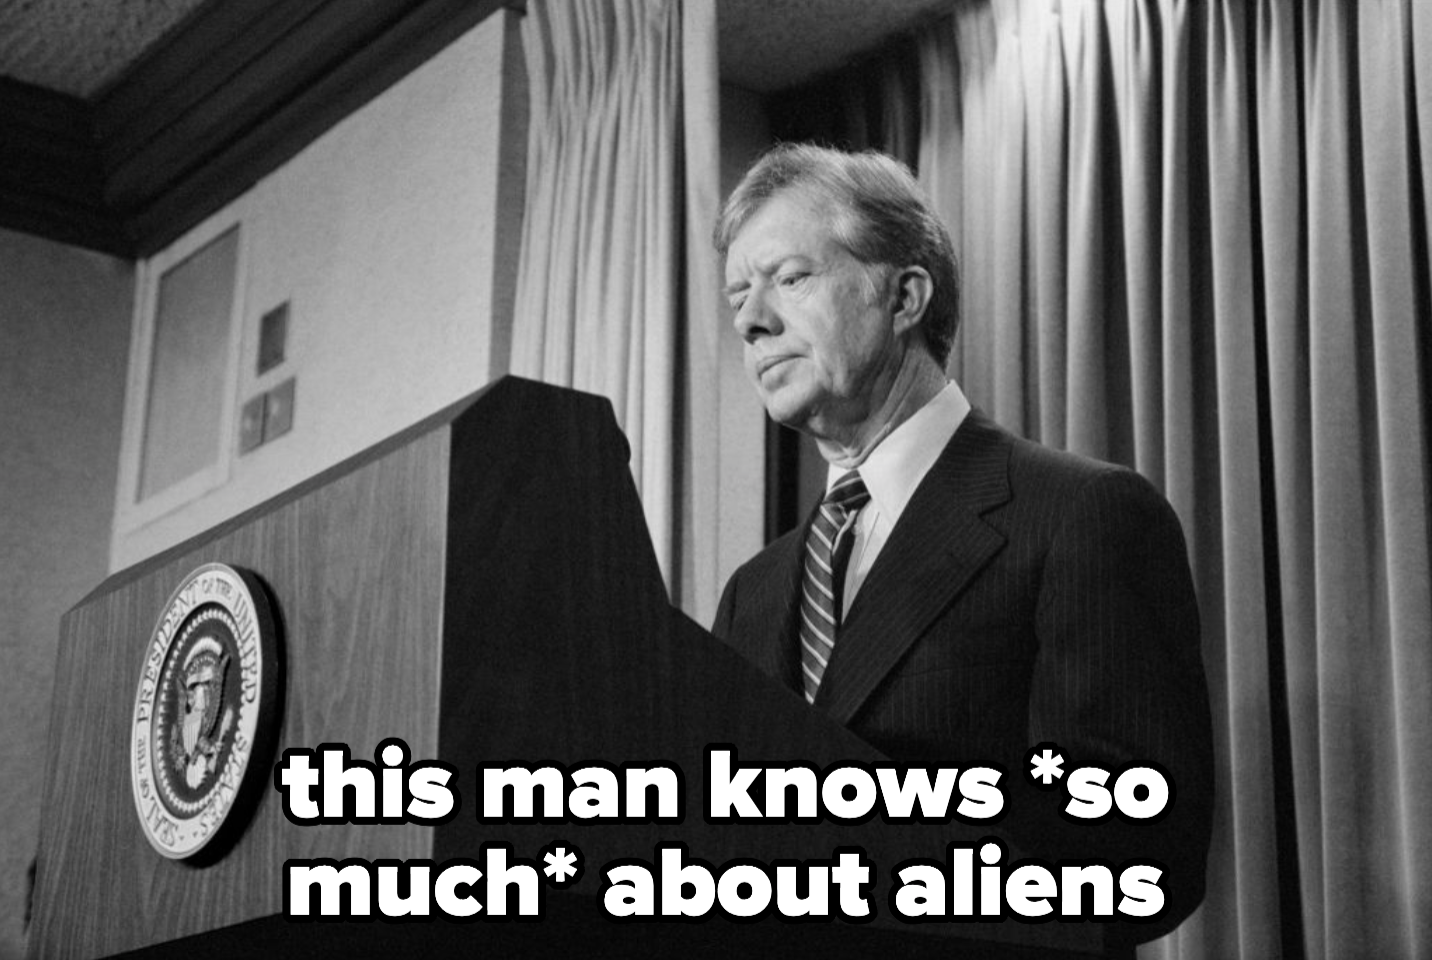 Carter, a man who knows so much about aliens